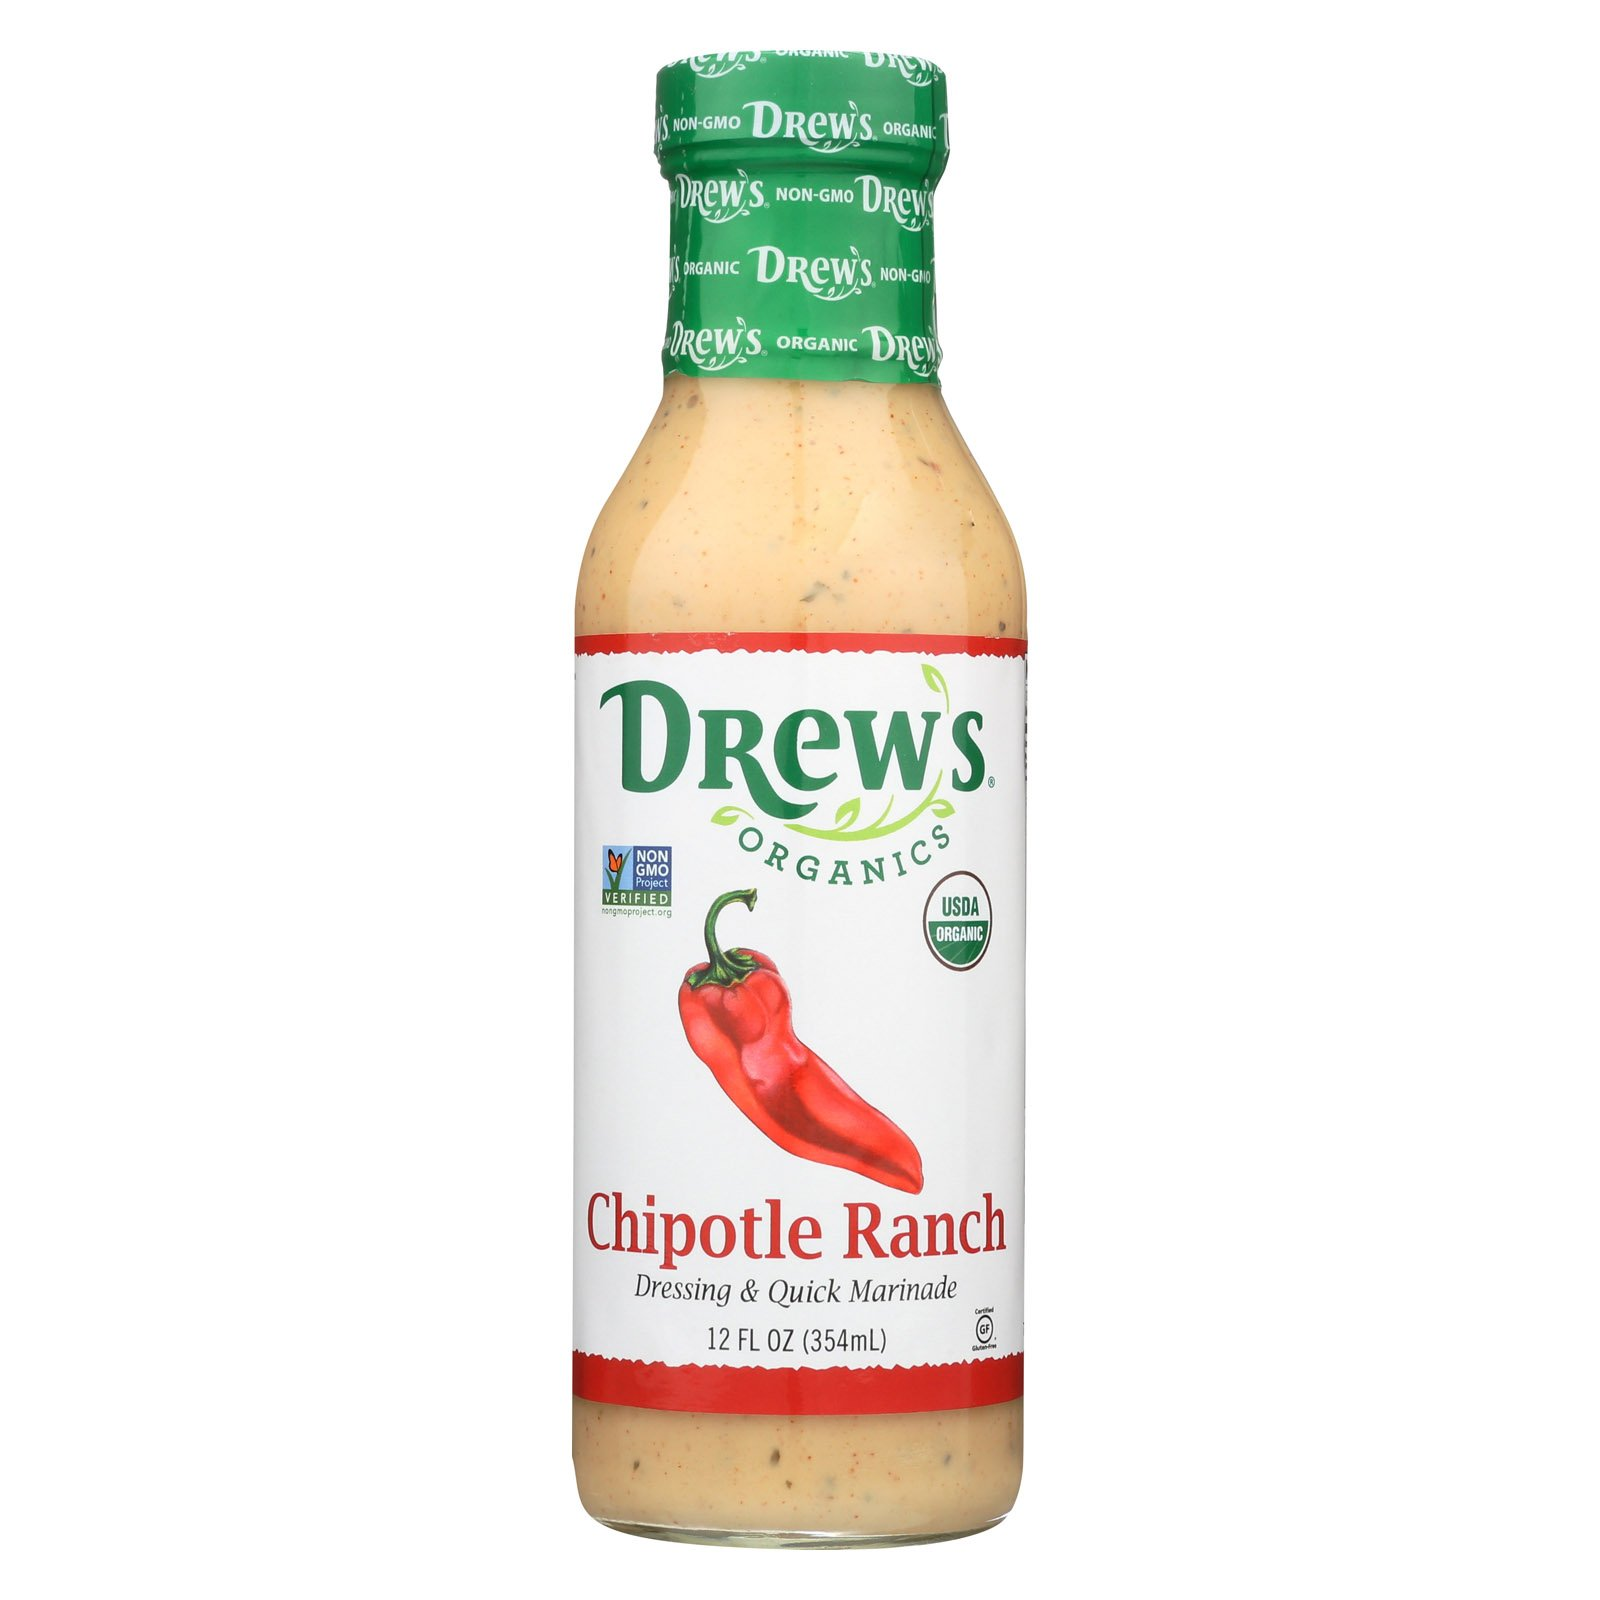 Drews Chipotle Ranch Dressing and Quick Marinade - 12 Oz. - Case of 6